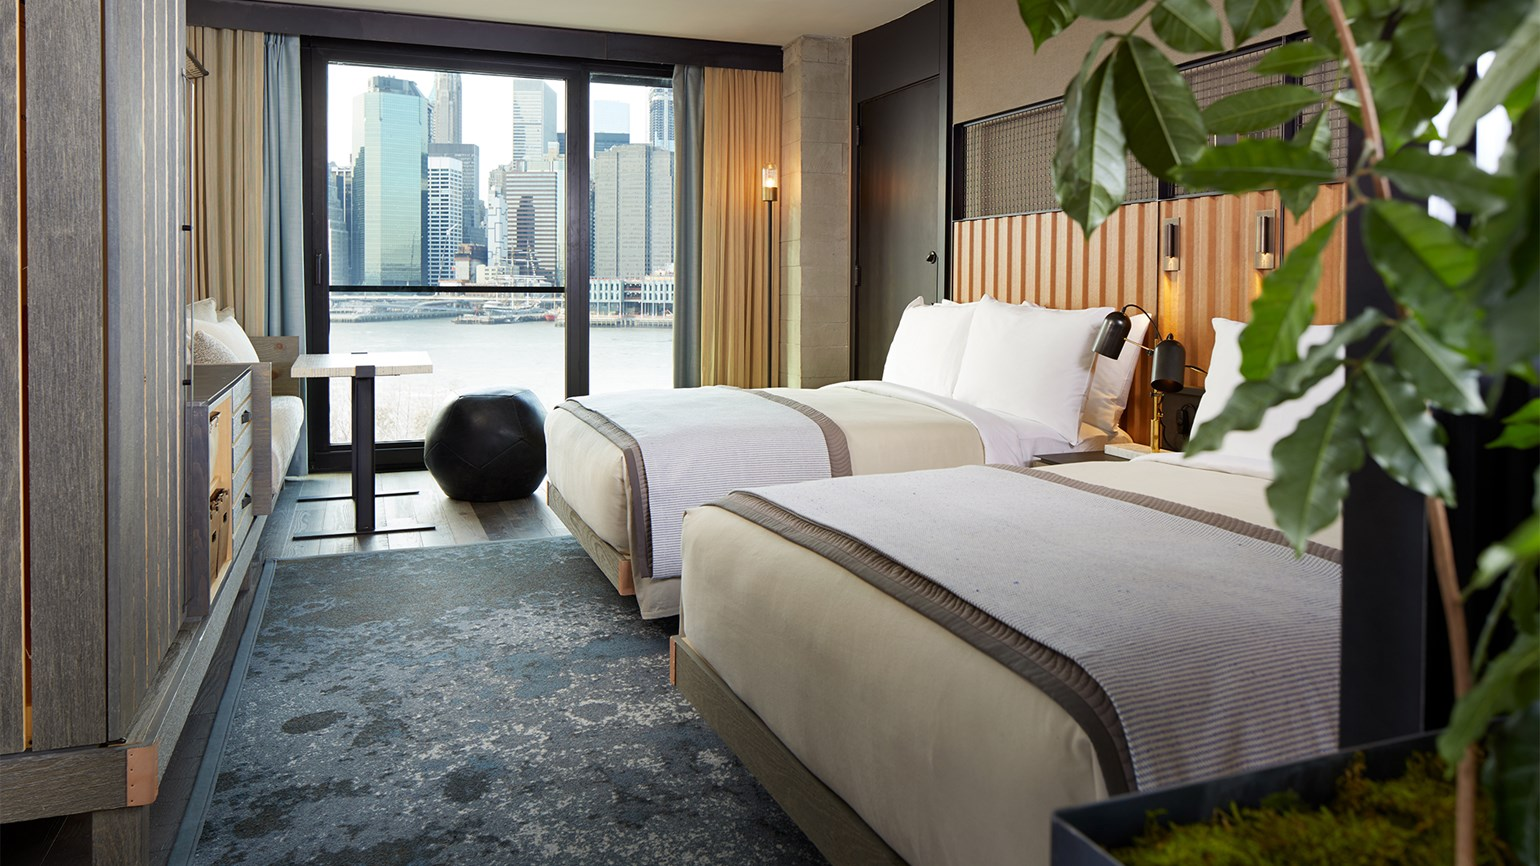 Ecoluxury brand 1 Hotels debuts in Brooklyn